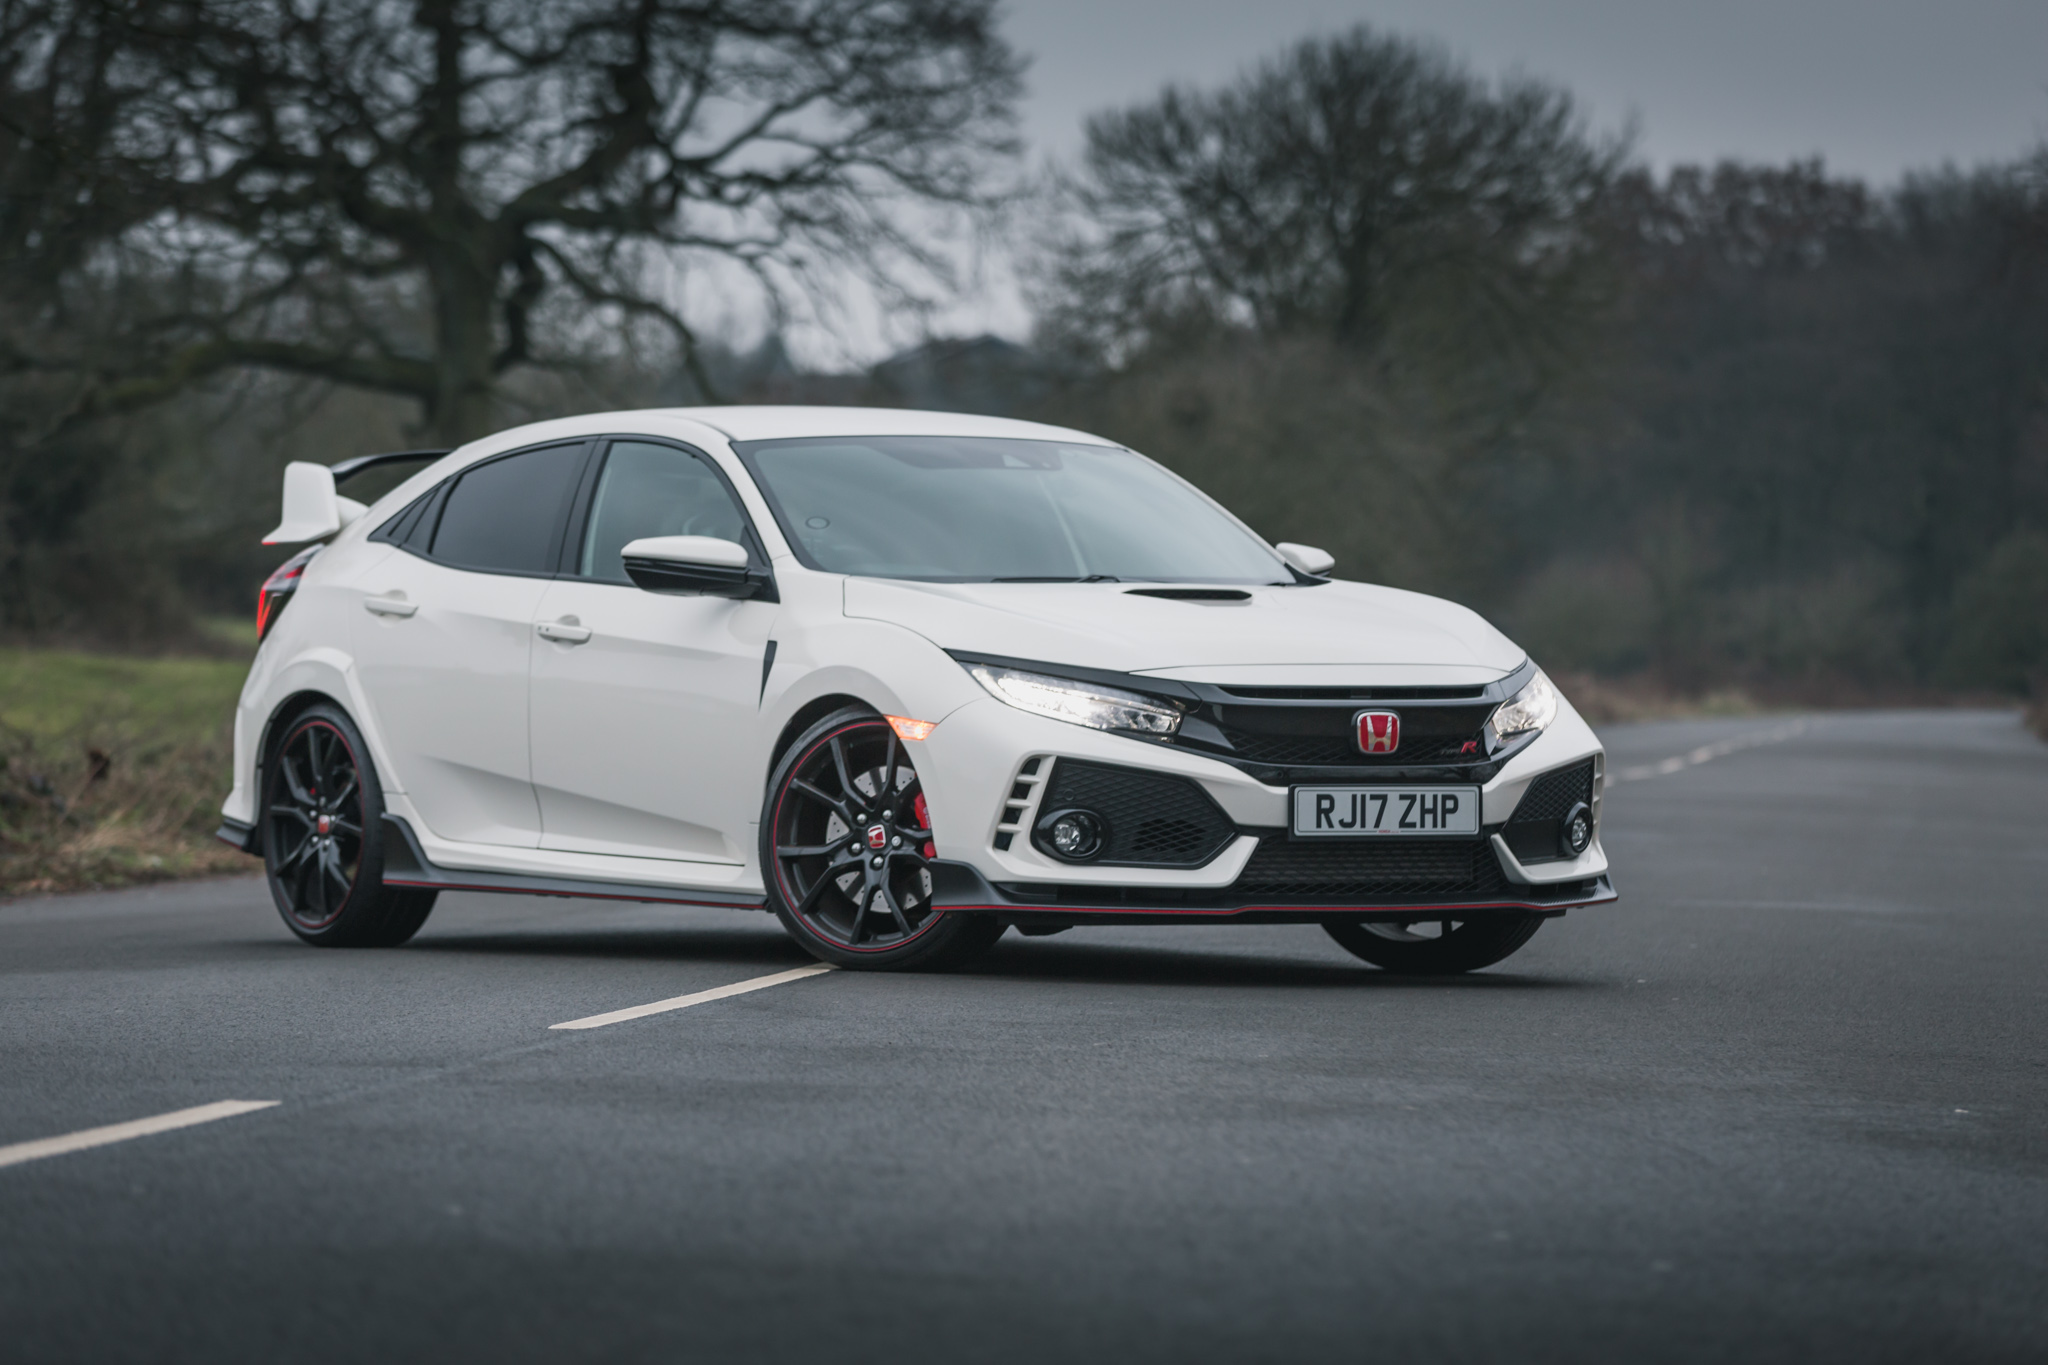 Honda Civic Type R Fk8 Review 2018 0 60mph In 5 8 Secs